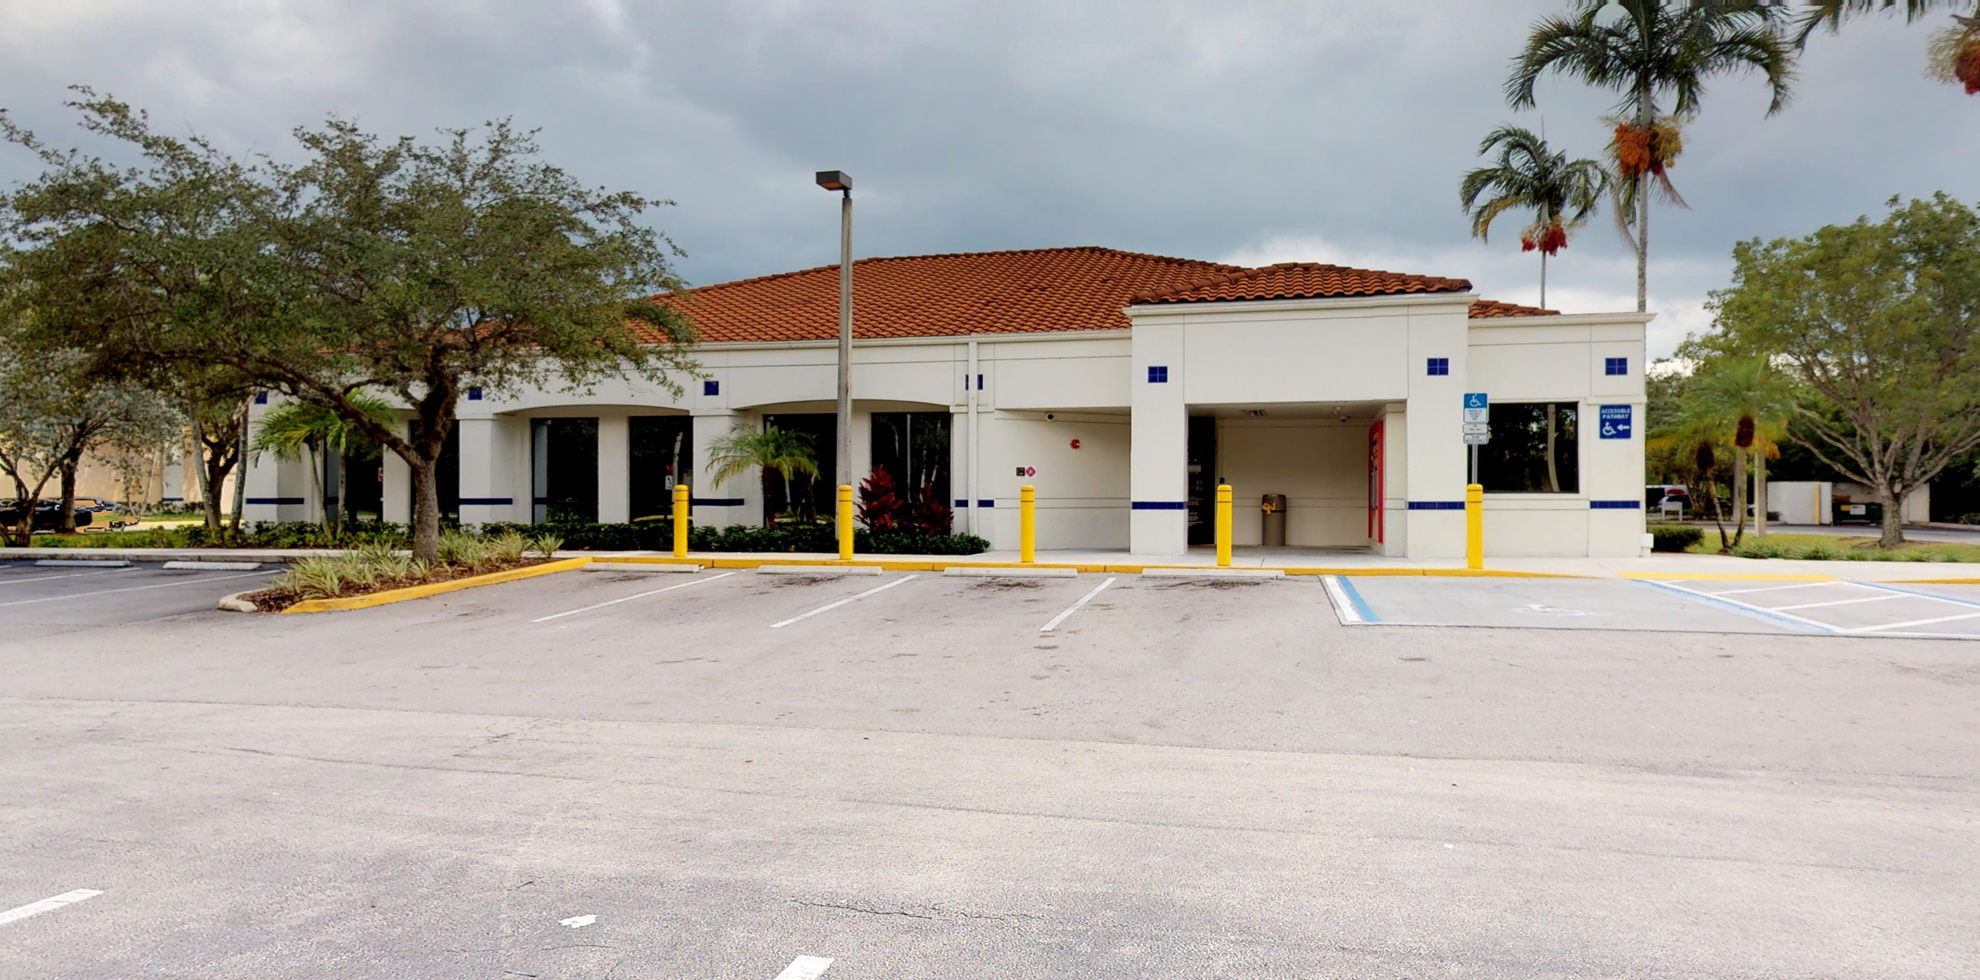 Bank of America financial center with drive-thru ATM and teller   12381 W Sunrise Blvd, Plantation, FL 33323